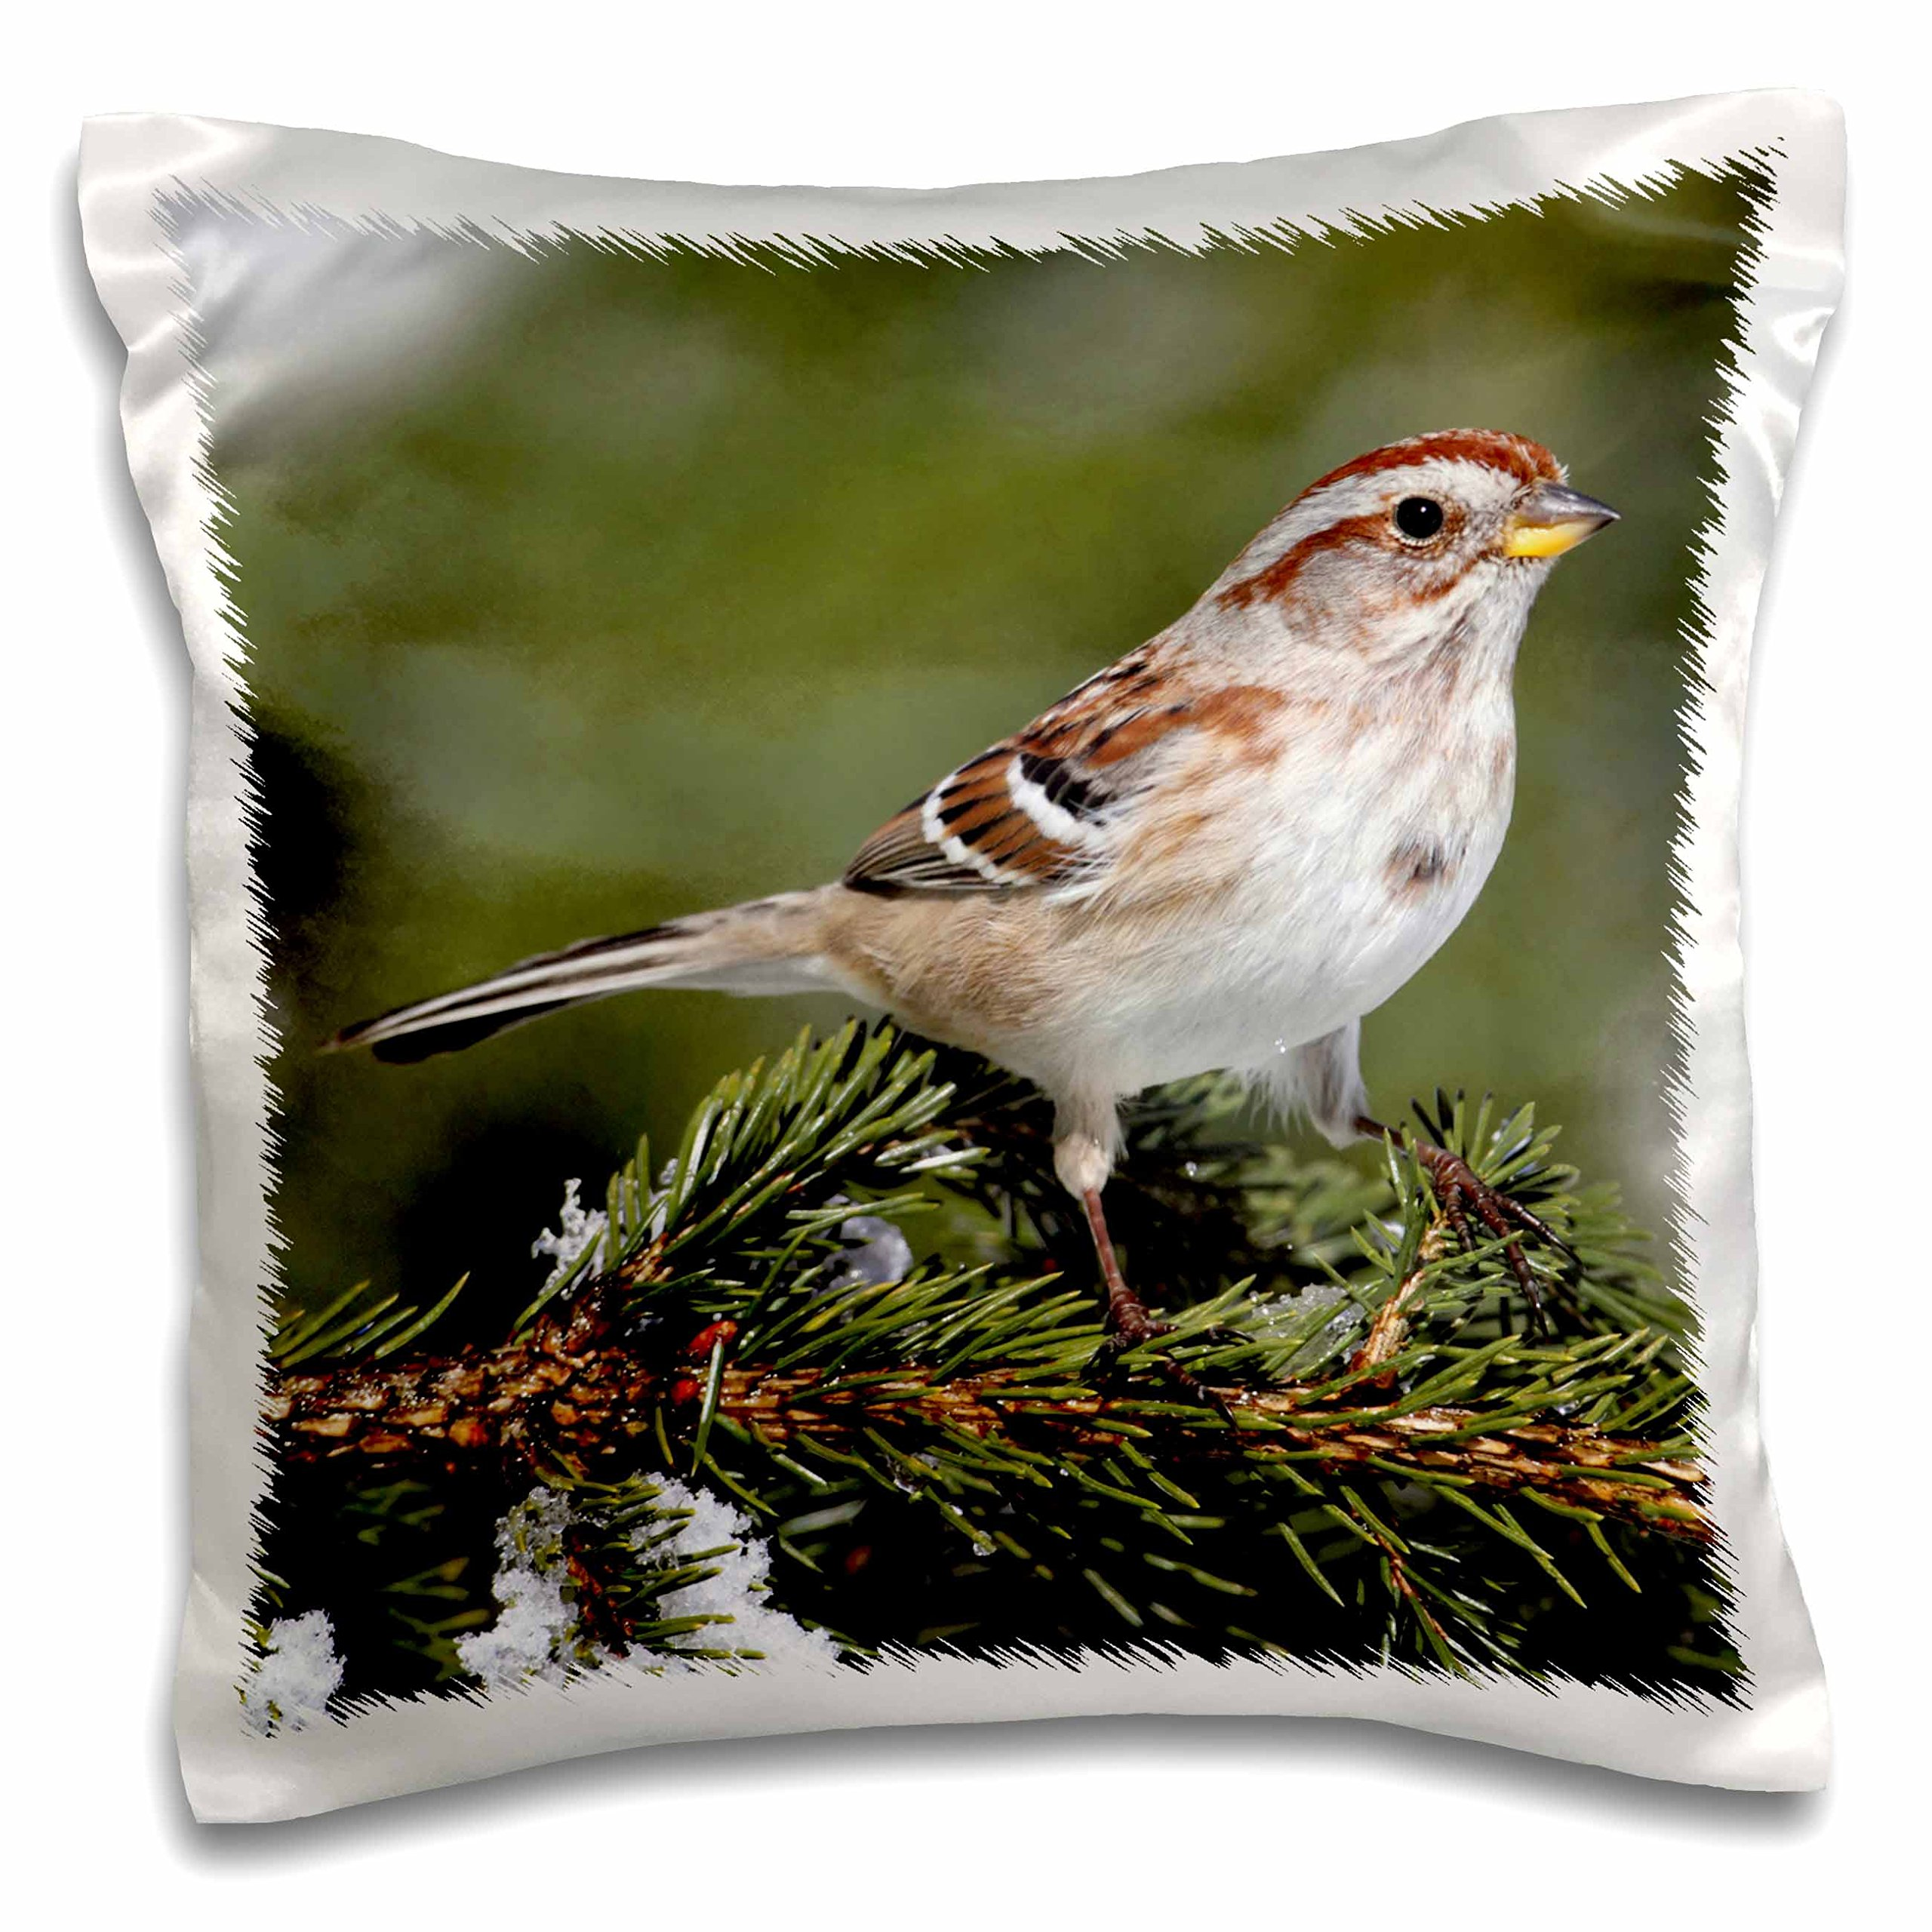 3D Rose American Tree Sparrow Spizella Arborea Bird Photo Animal Photography Design Pillowcase, 16'' x 16''